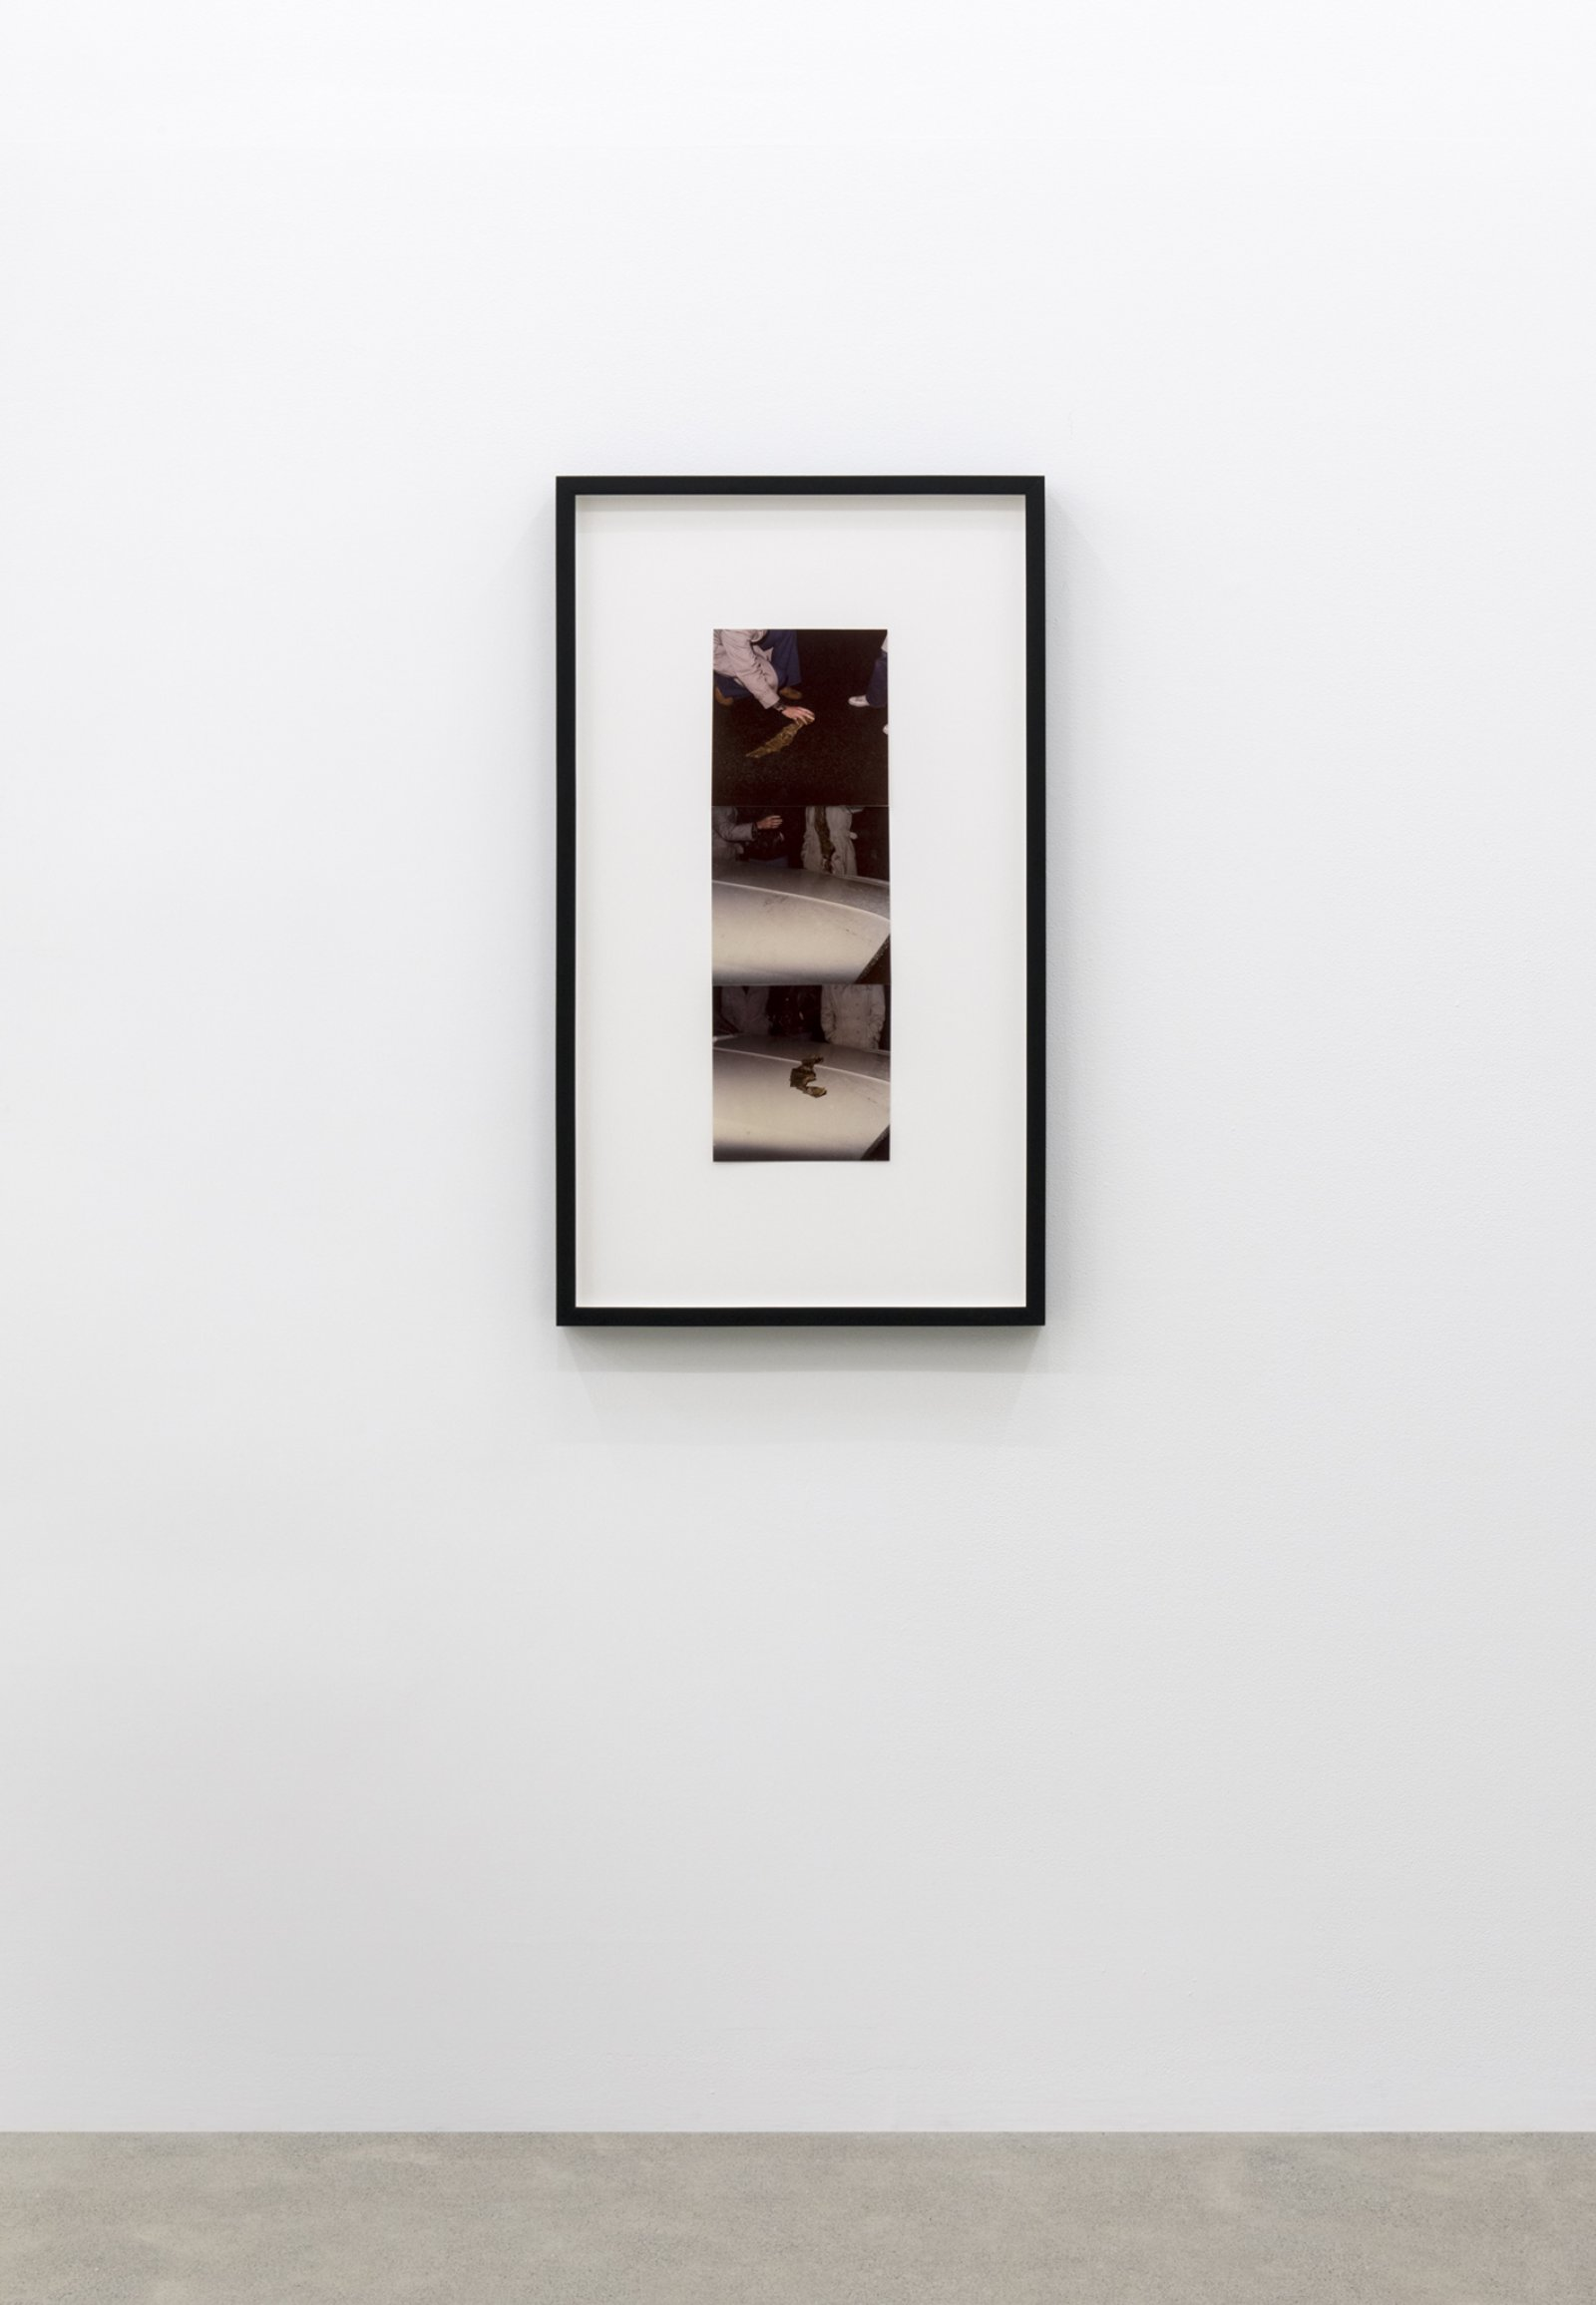 Ian Wallace, Found Object, 1977, 3 colour photographs, 37 x 21 in. (94 x 53 cm) by Ian Wallace